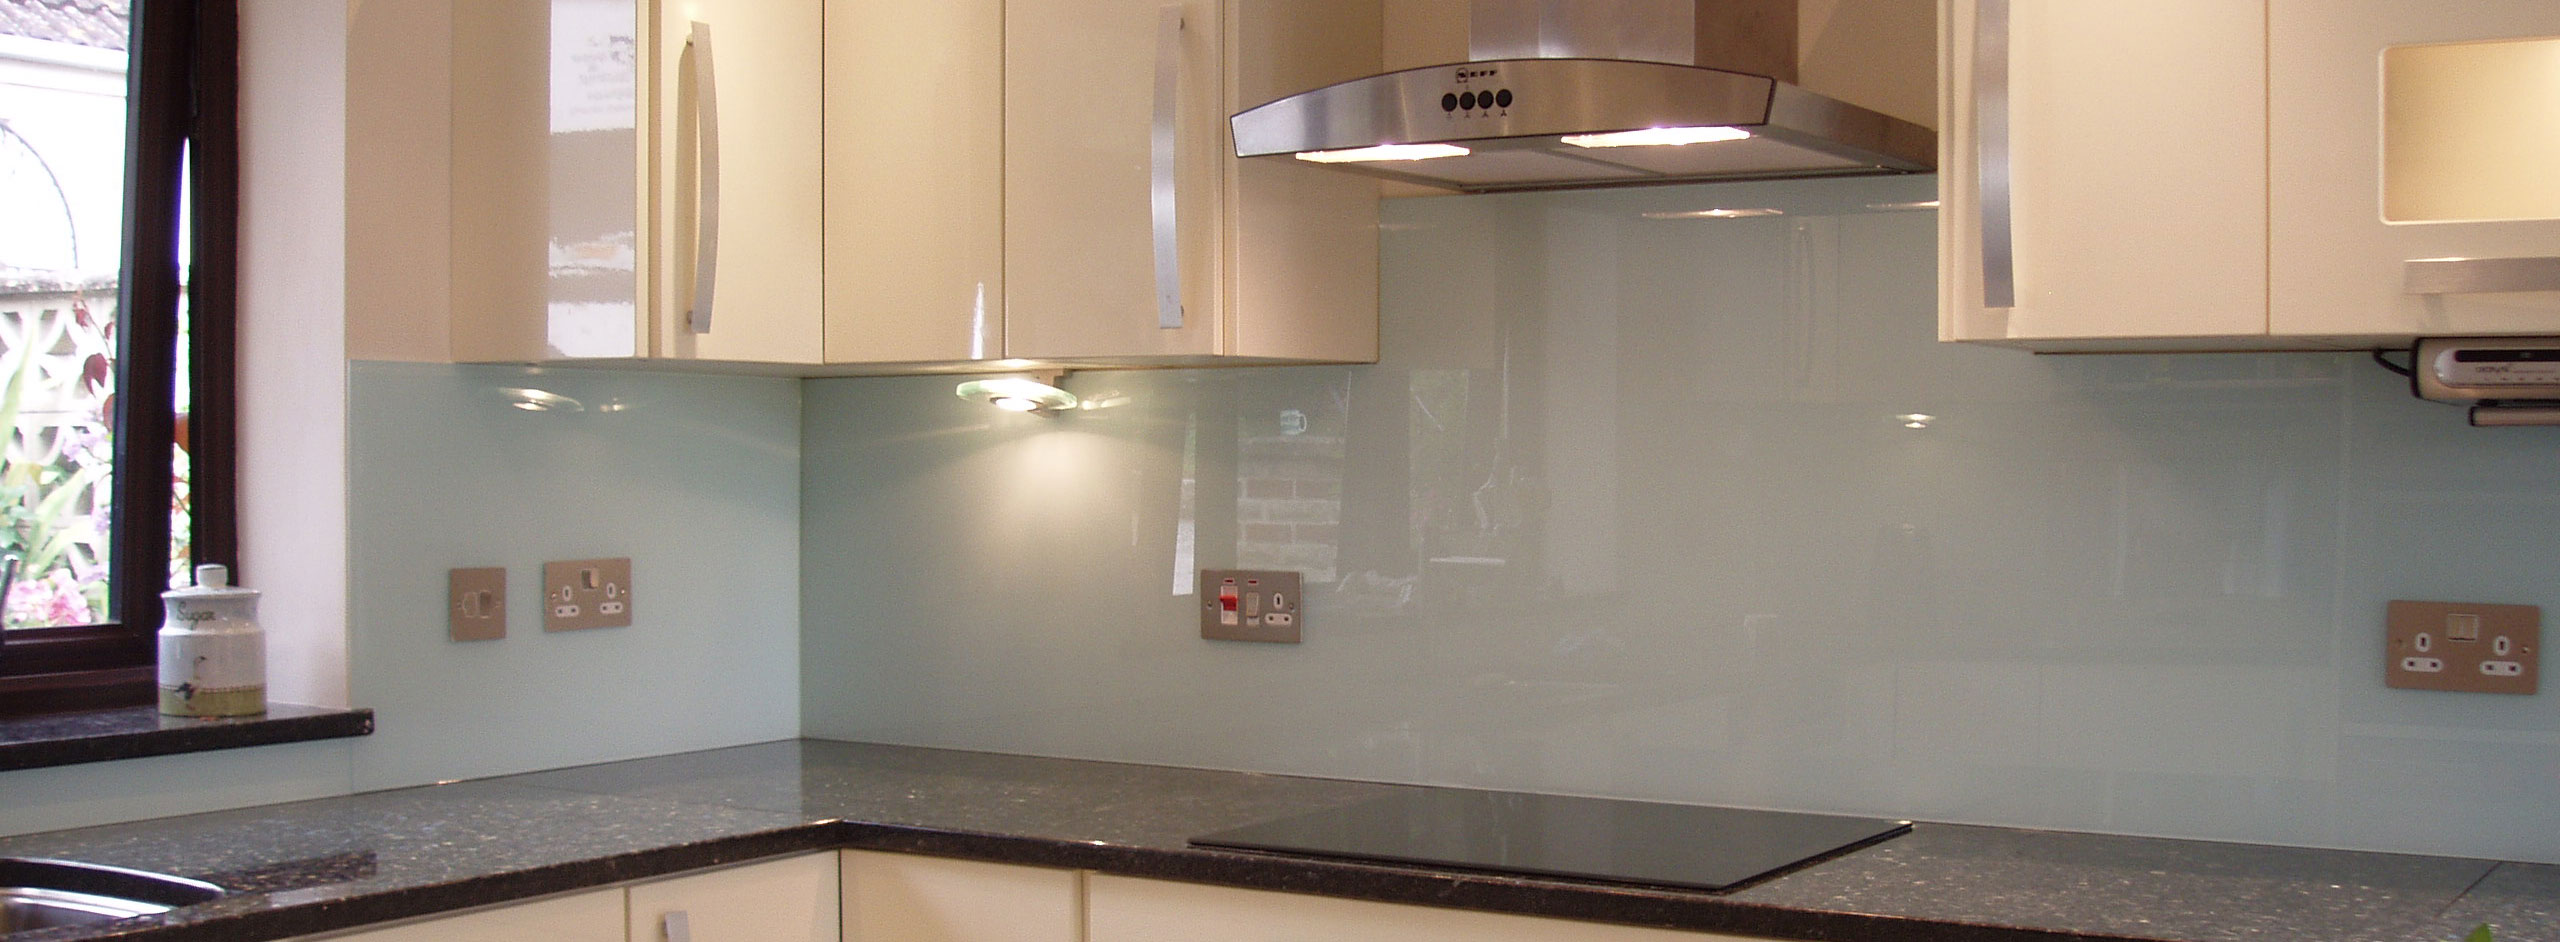 538249_srf-glass-splashbacks(5).jpg